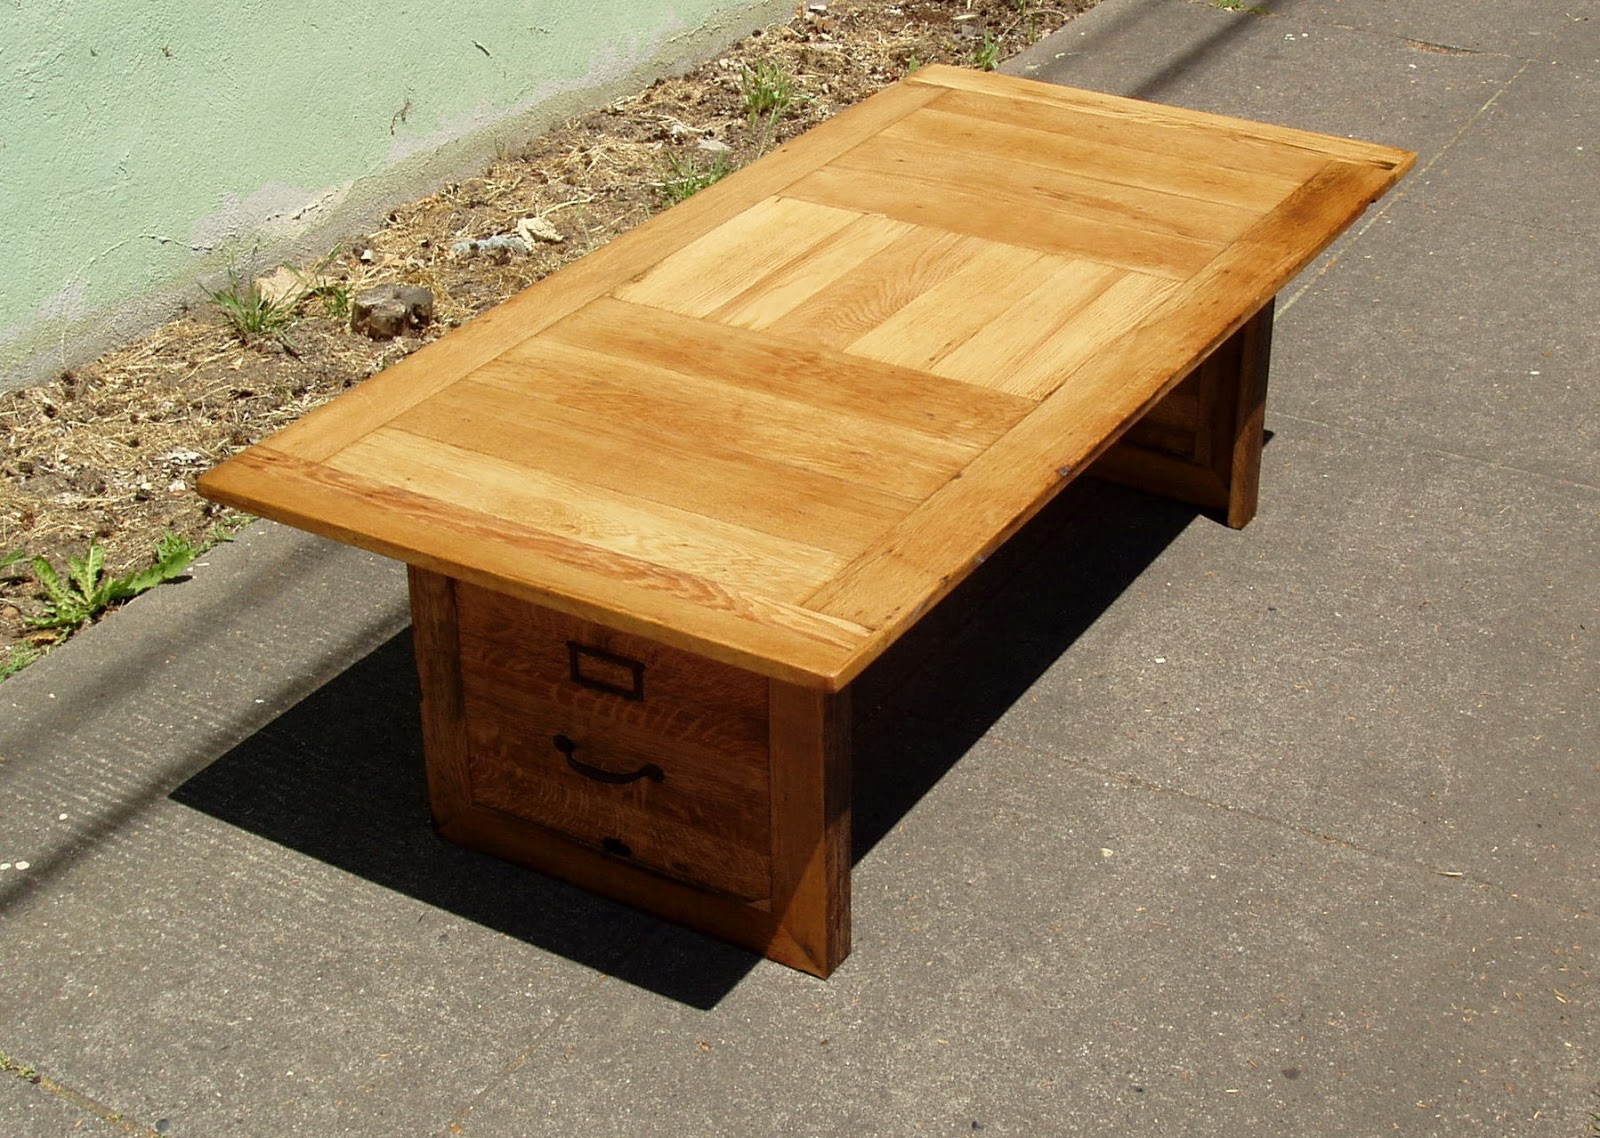 Reclaimed wood furniture portland furniture design ideas Reclaimed furniture portland